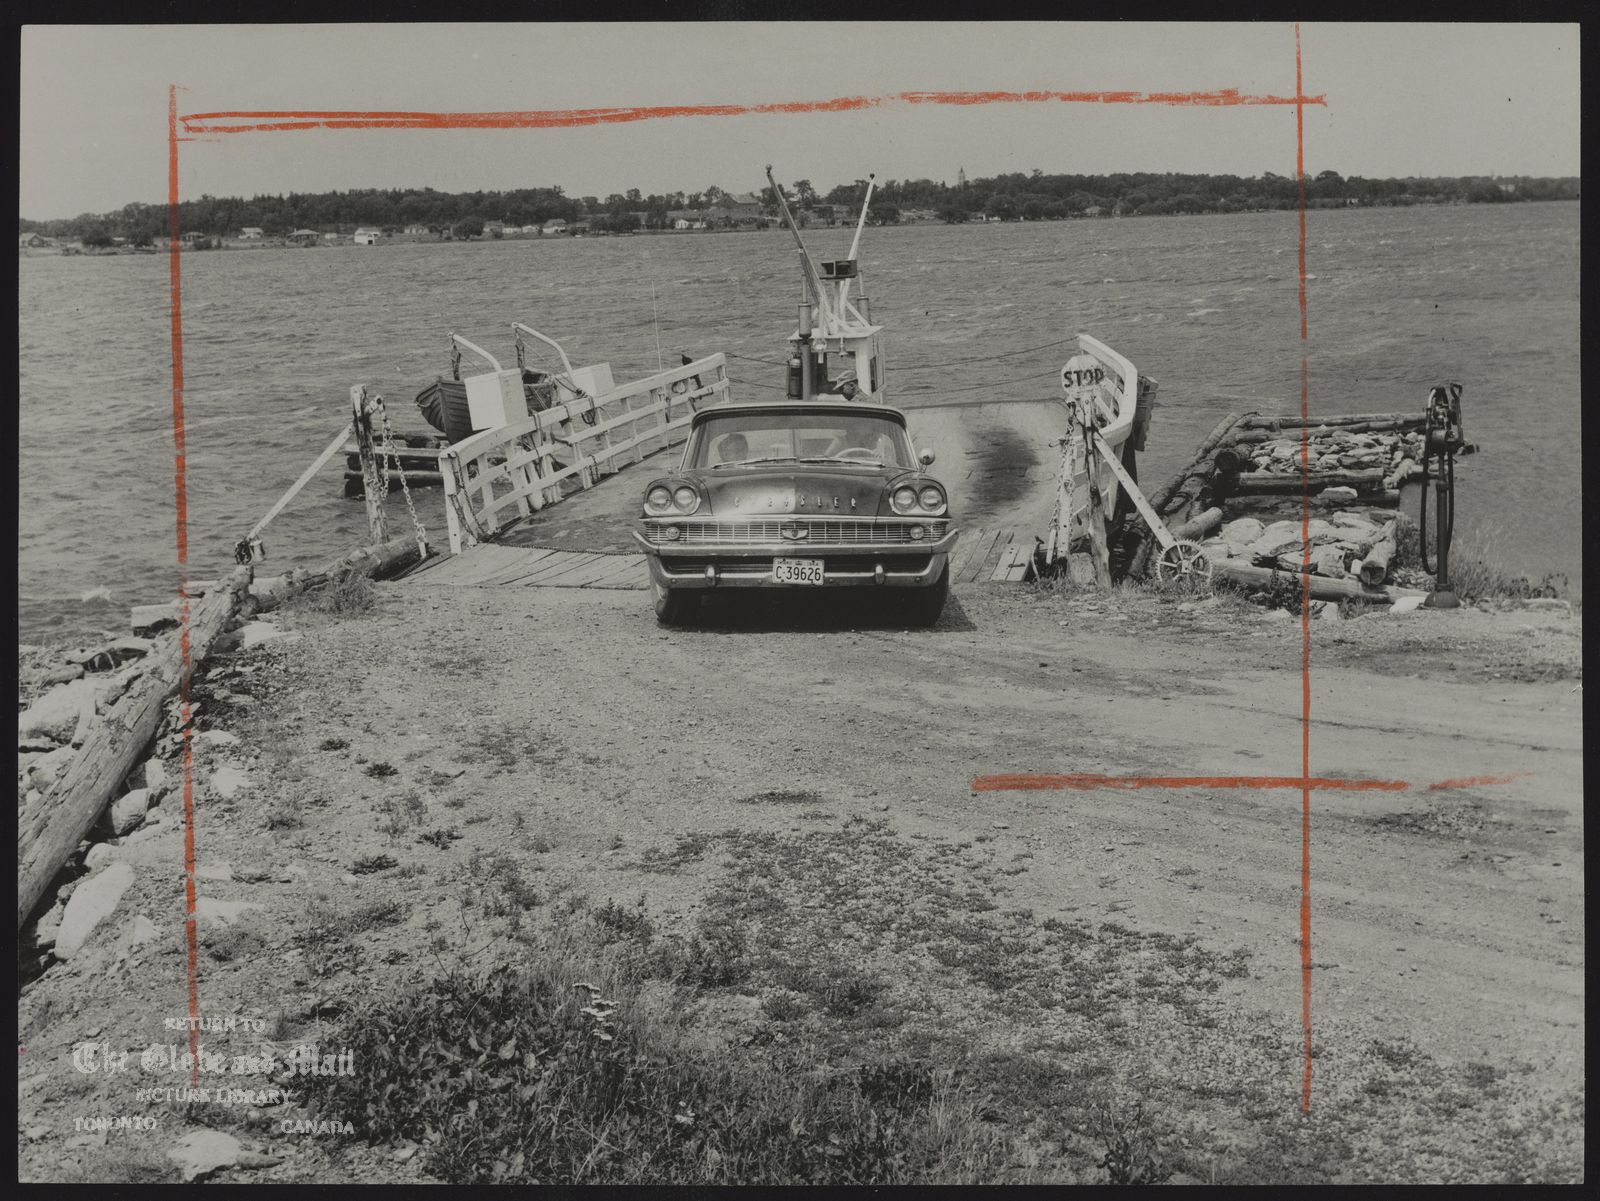 FERRY To be replaced by bridge from Tyendinaga Indian reserve at Deseronto to Prince Edward County, double ended car carrier has been crossing three-quarter-mile gap for over 80 years.